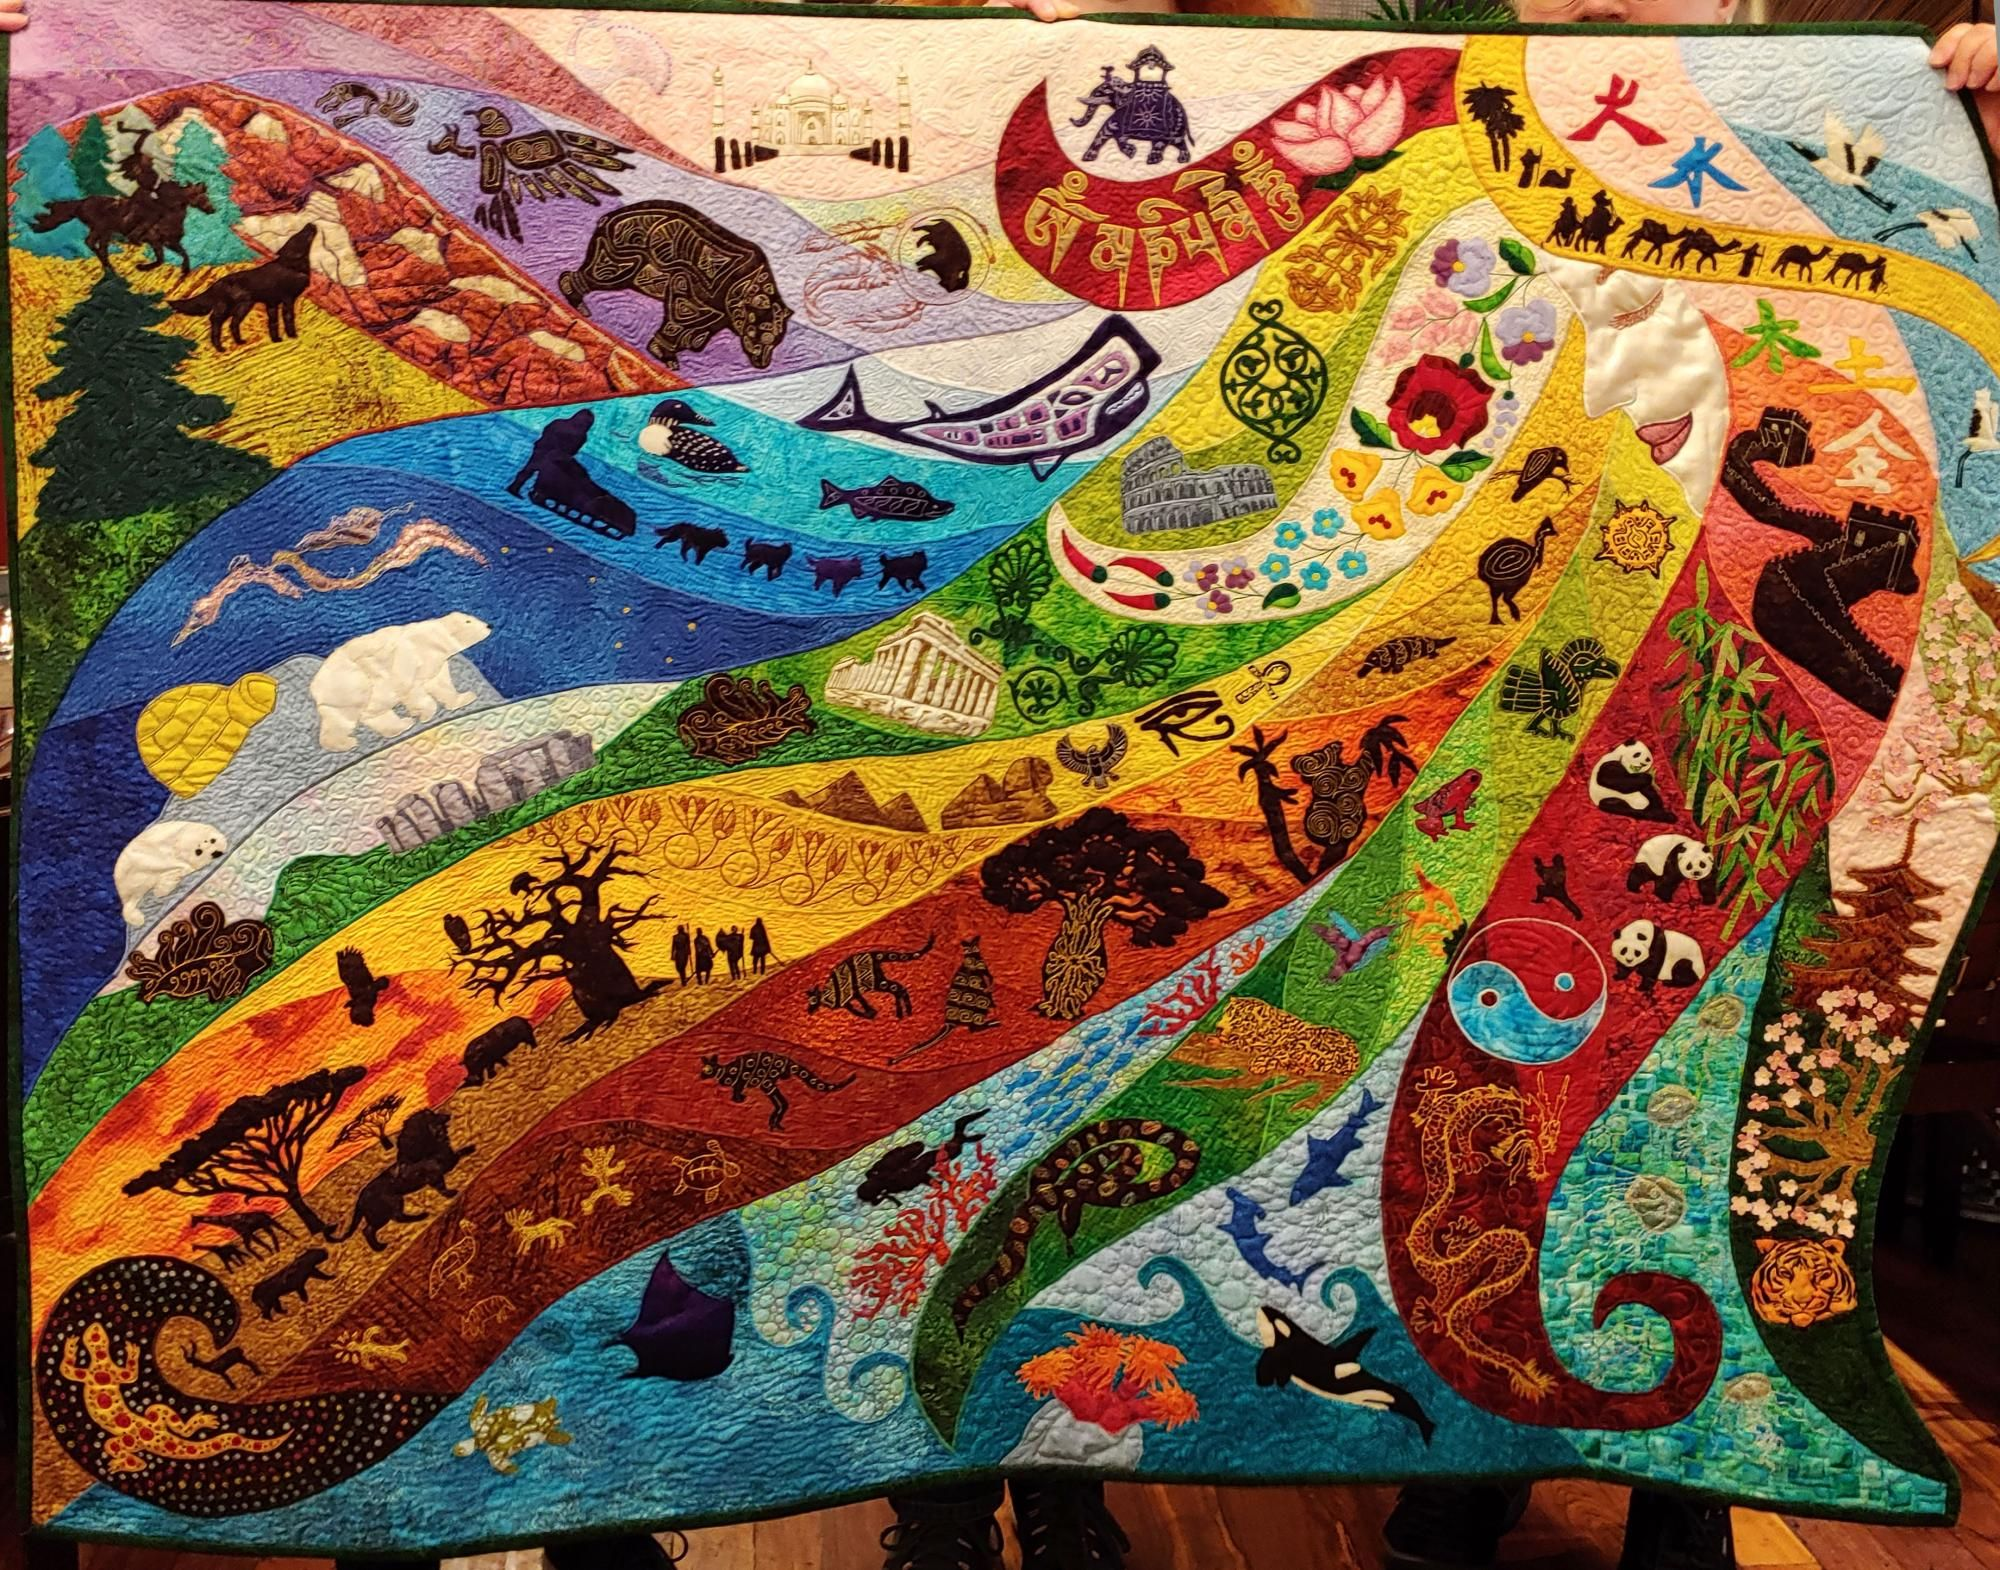 For The Love Of Gaia International Quilt Museum Lincoln Ne In 2020 Quilts Artwork Museum